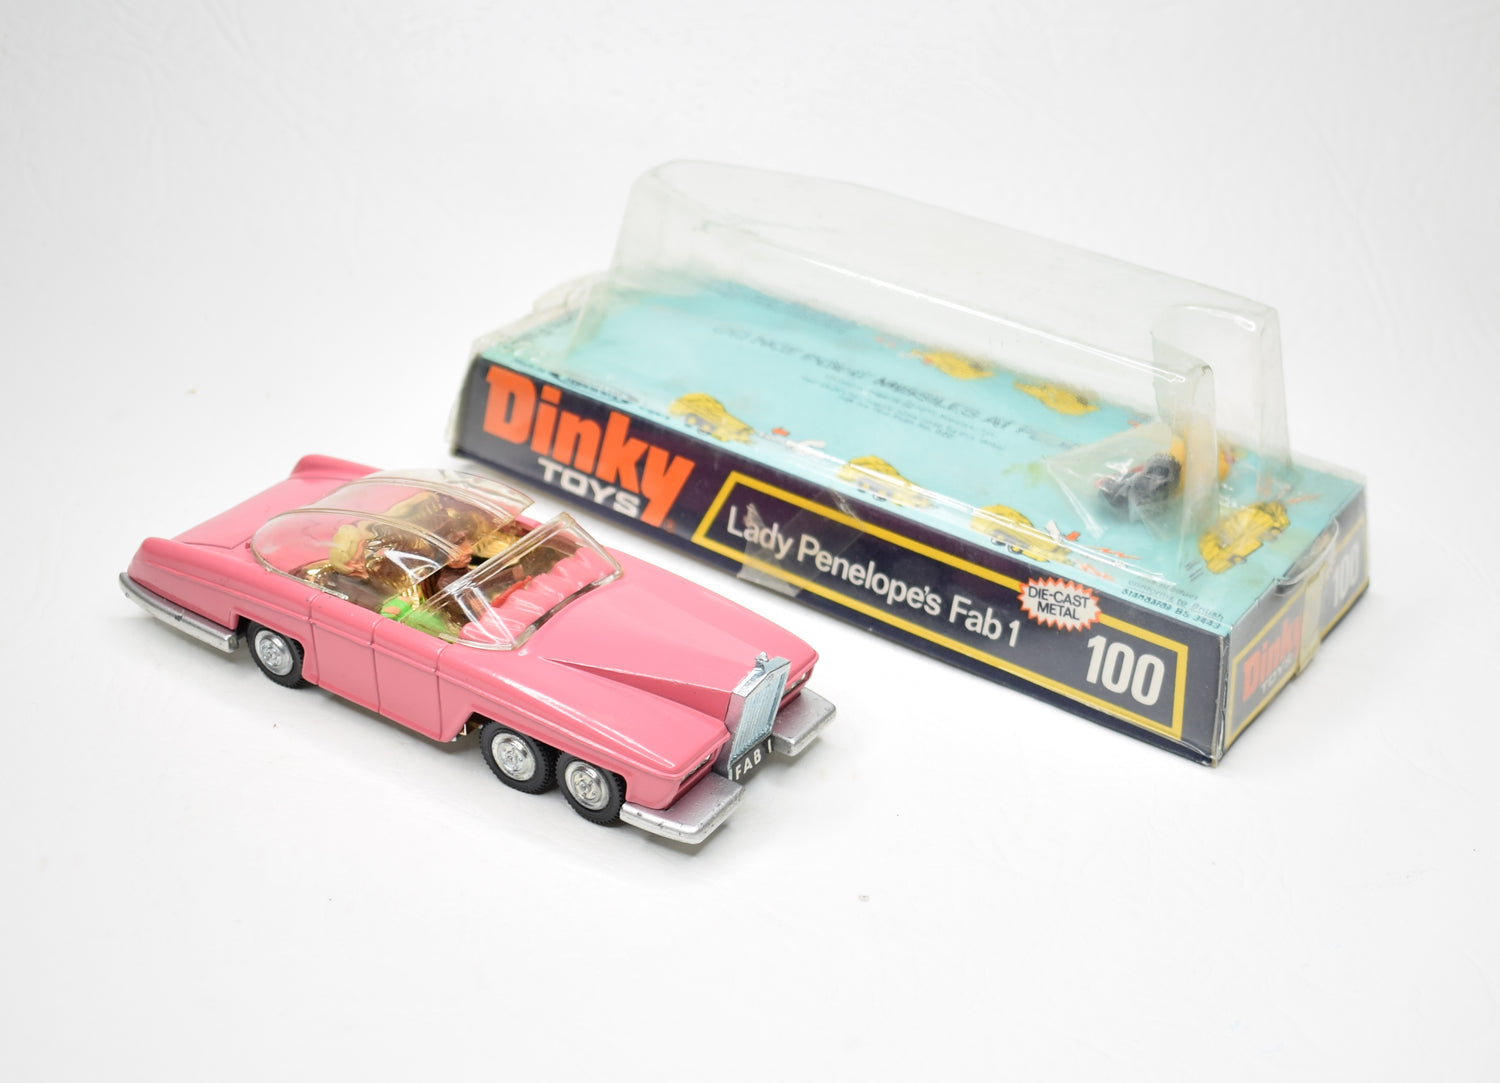 Dinky toys 100 Fab 1 Virtually Mint/Boxed 10/15.